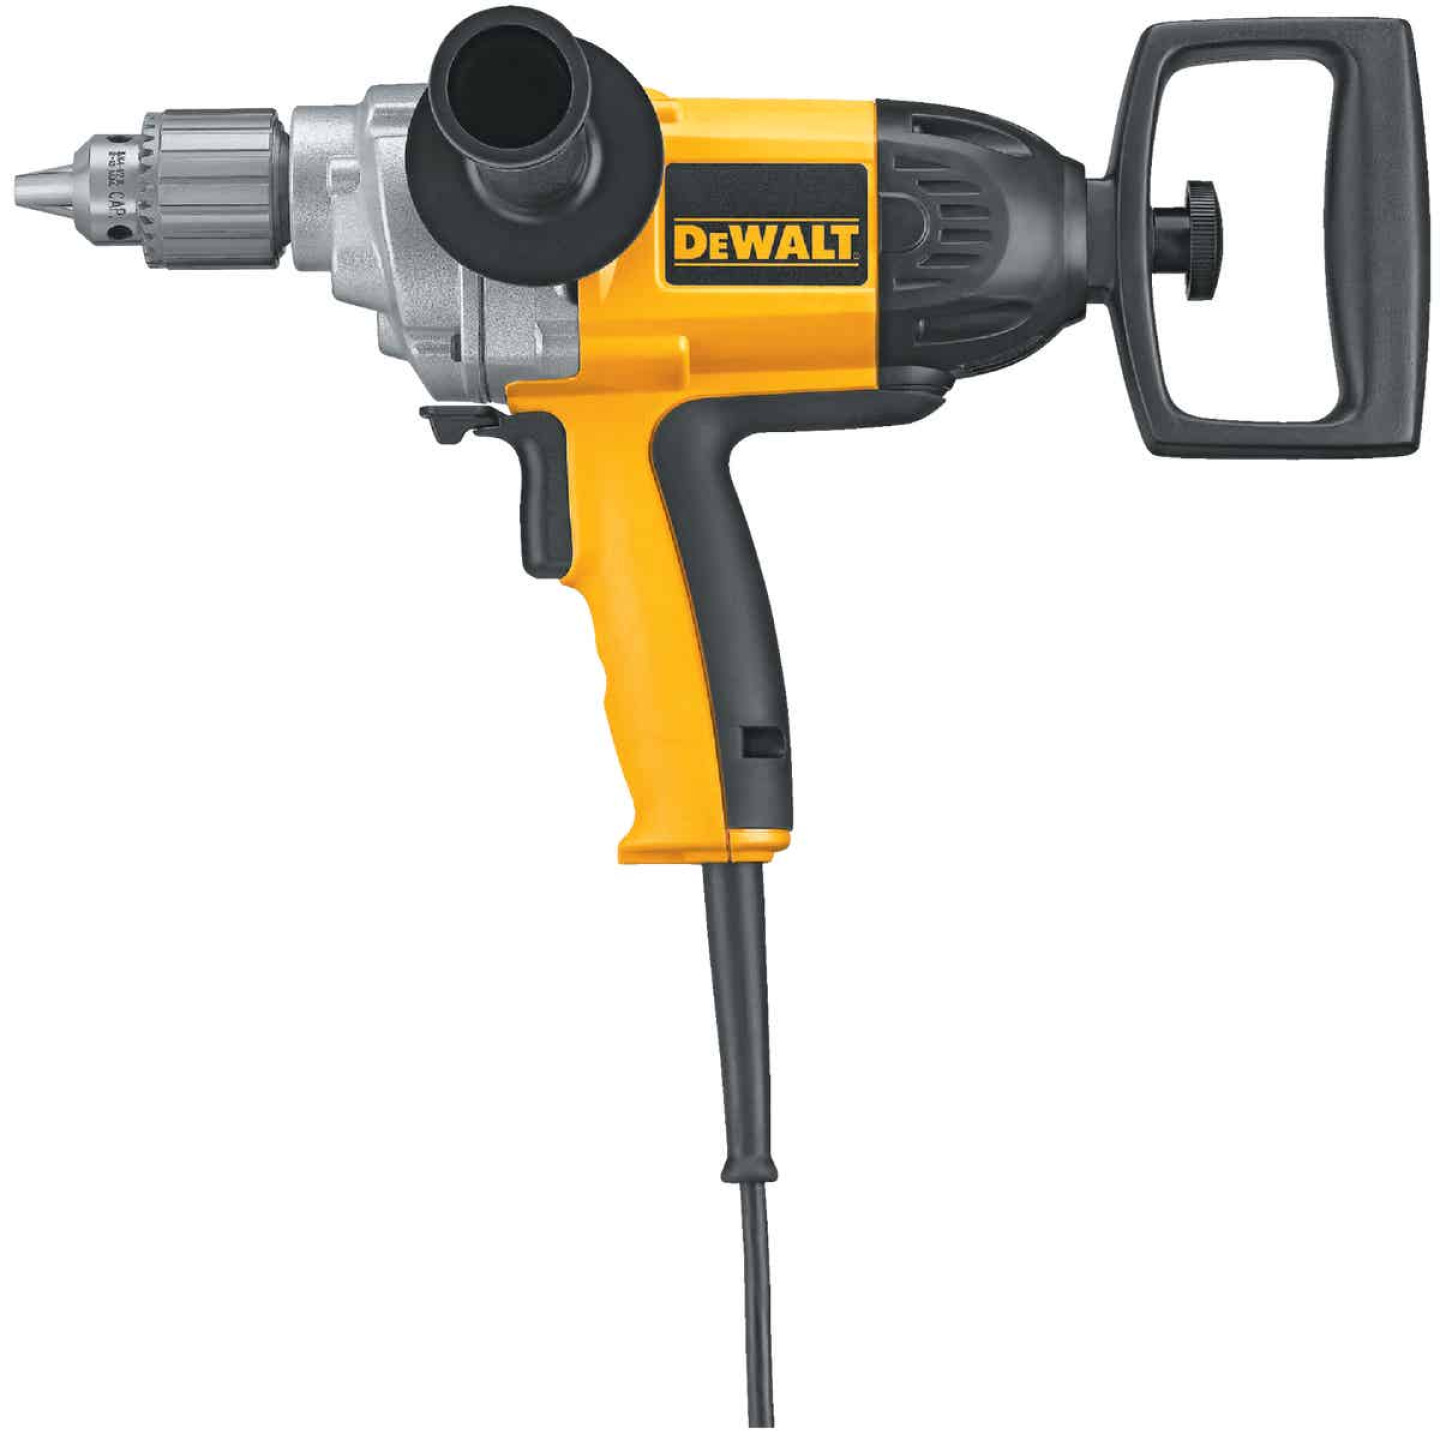 DeWalt 1/2 In. 9-Amp Keyed Electric Drill with Spade Handle Image 1